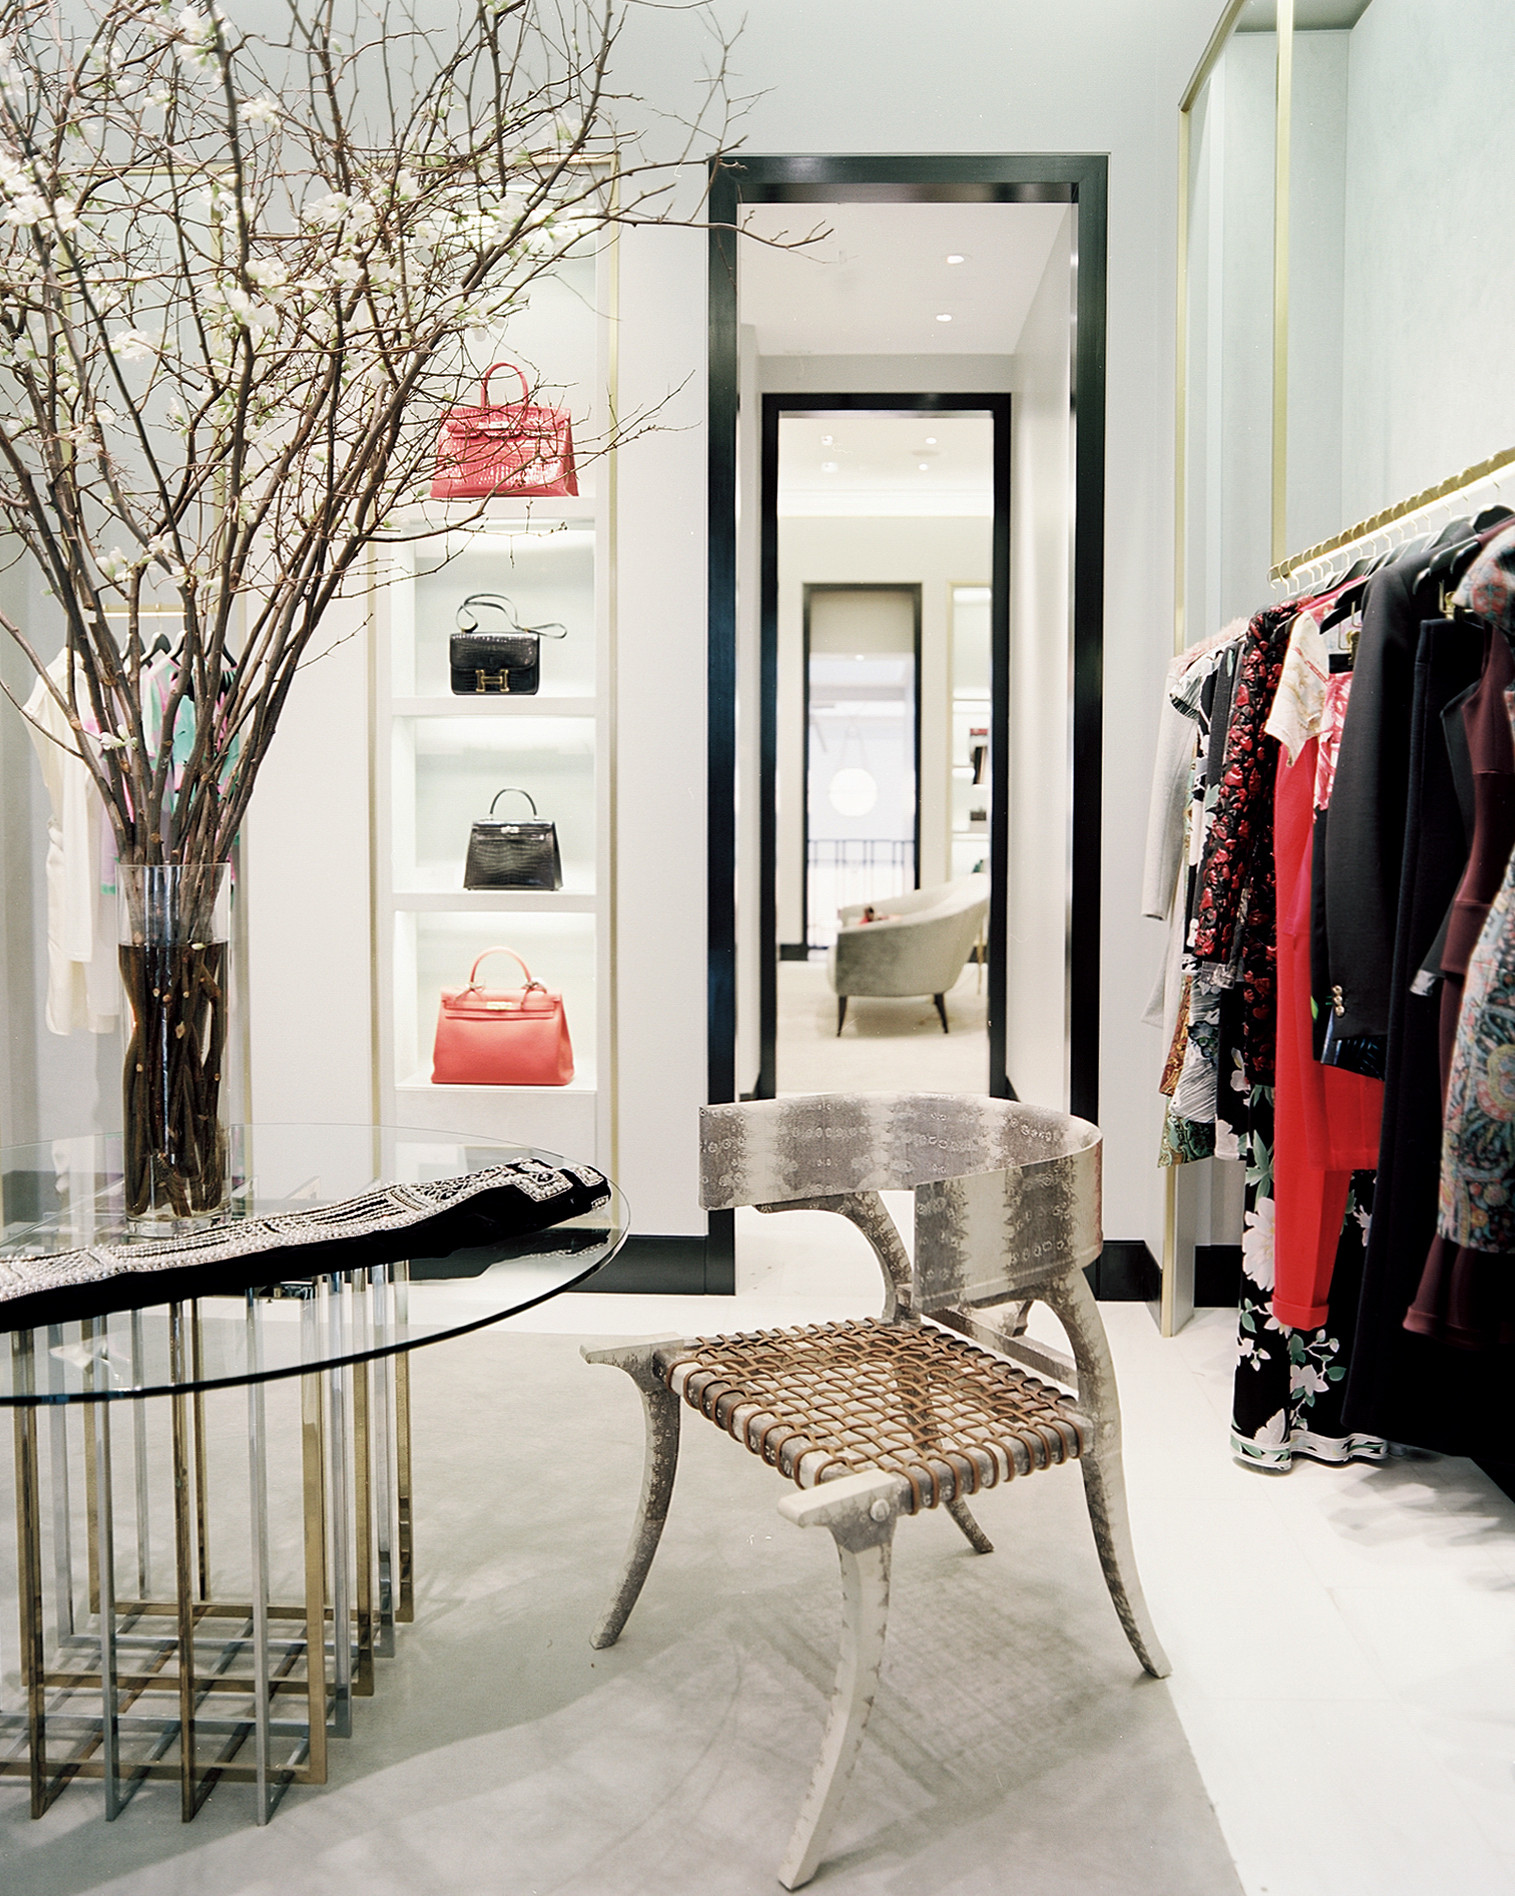 Inside Manhattan's Fivestory, just one of several boutiques across the country you can browse on House Account.